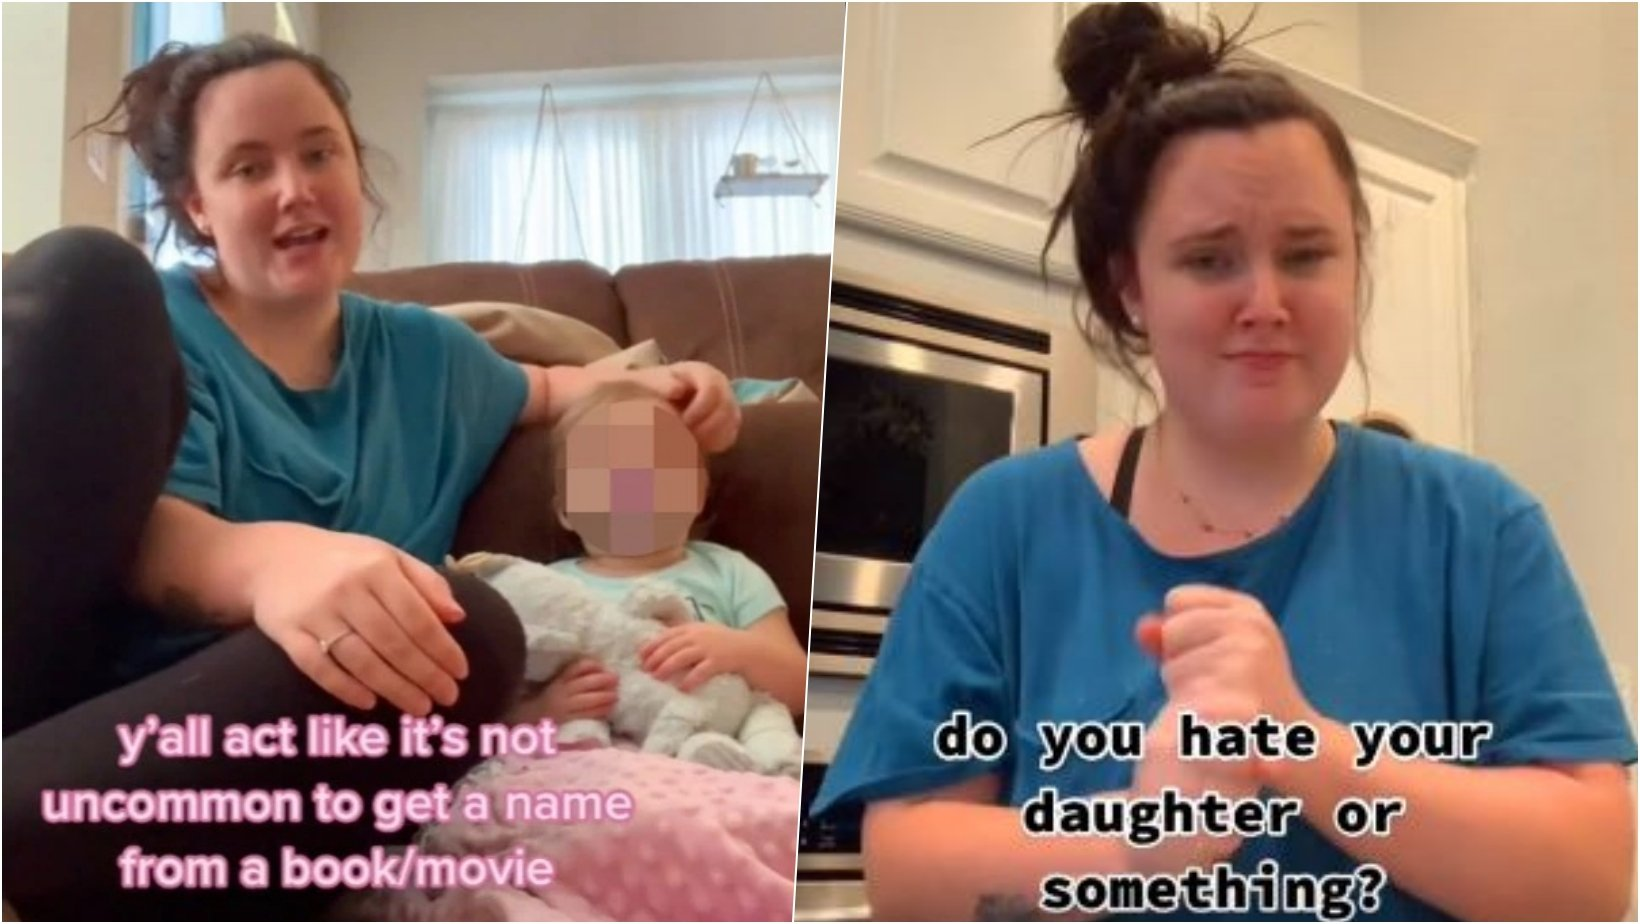 6 facebook cover 30.jpg?resize=412,275 - Mom Was Accused For Hating Her Own Daughter After Giving Her An Unusual Name